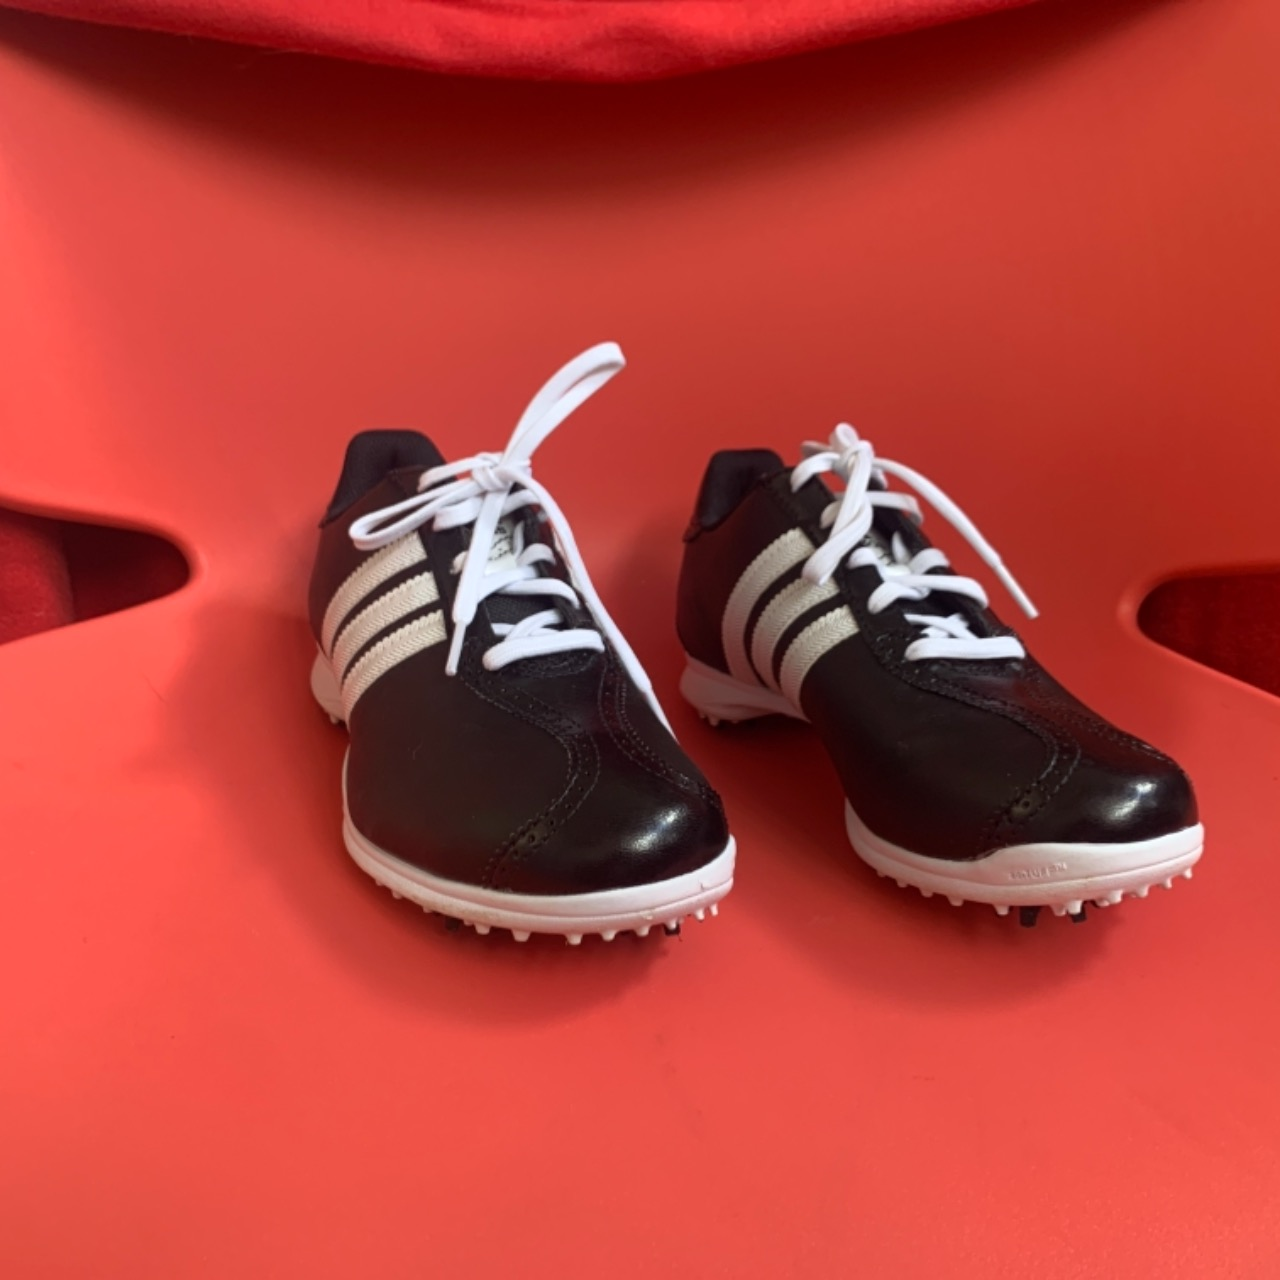 Adidas Traxion Men's Classic Golf Shoes US Size 8 Black /White